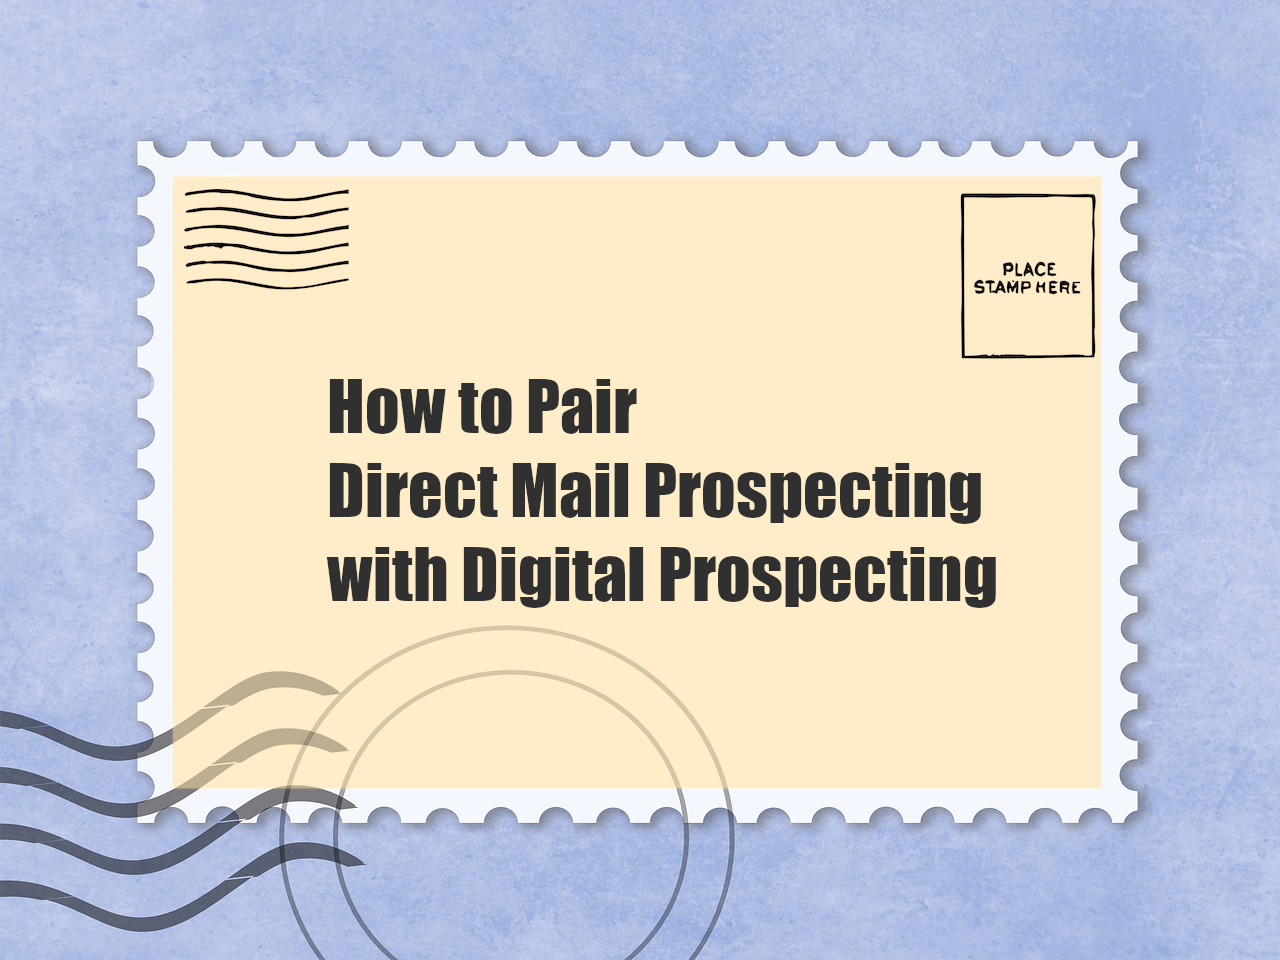 How to Pair Direct Mail Prospecting with Digital Prospecting